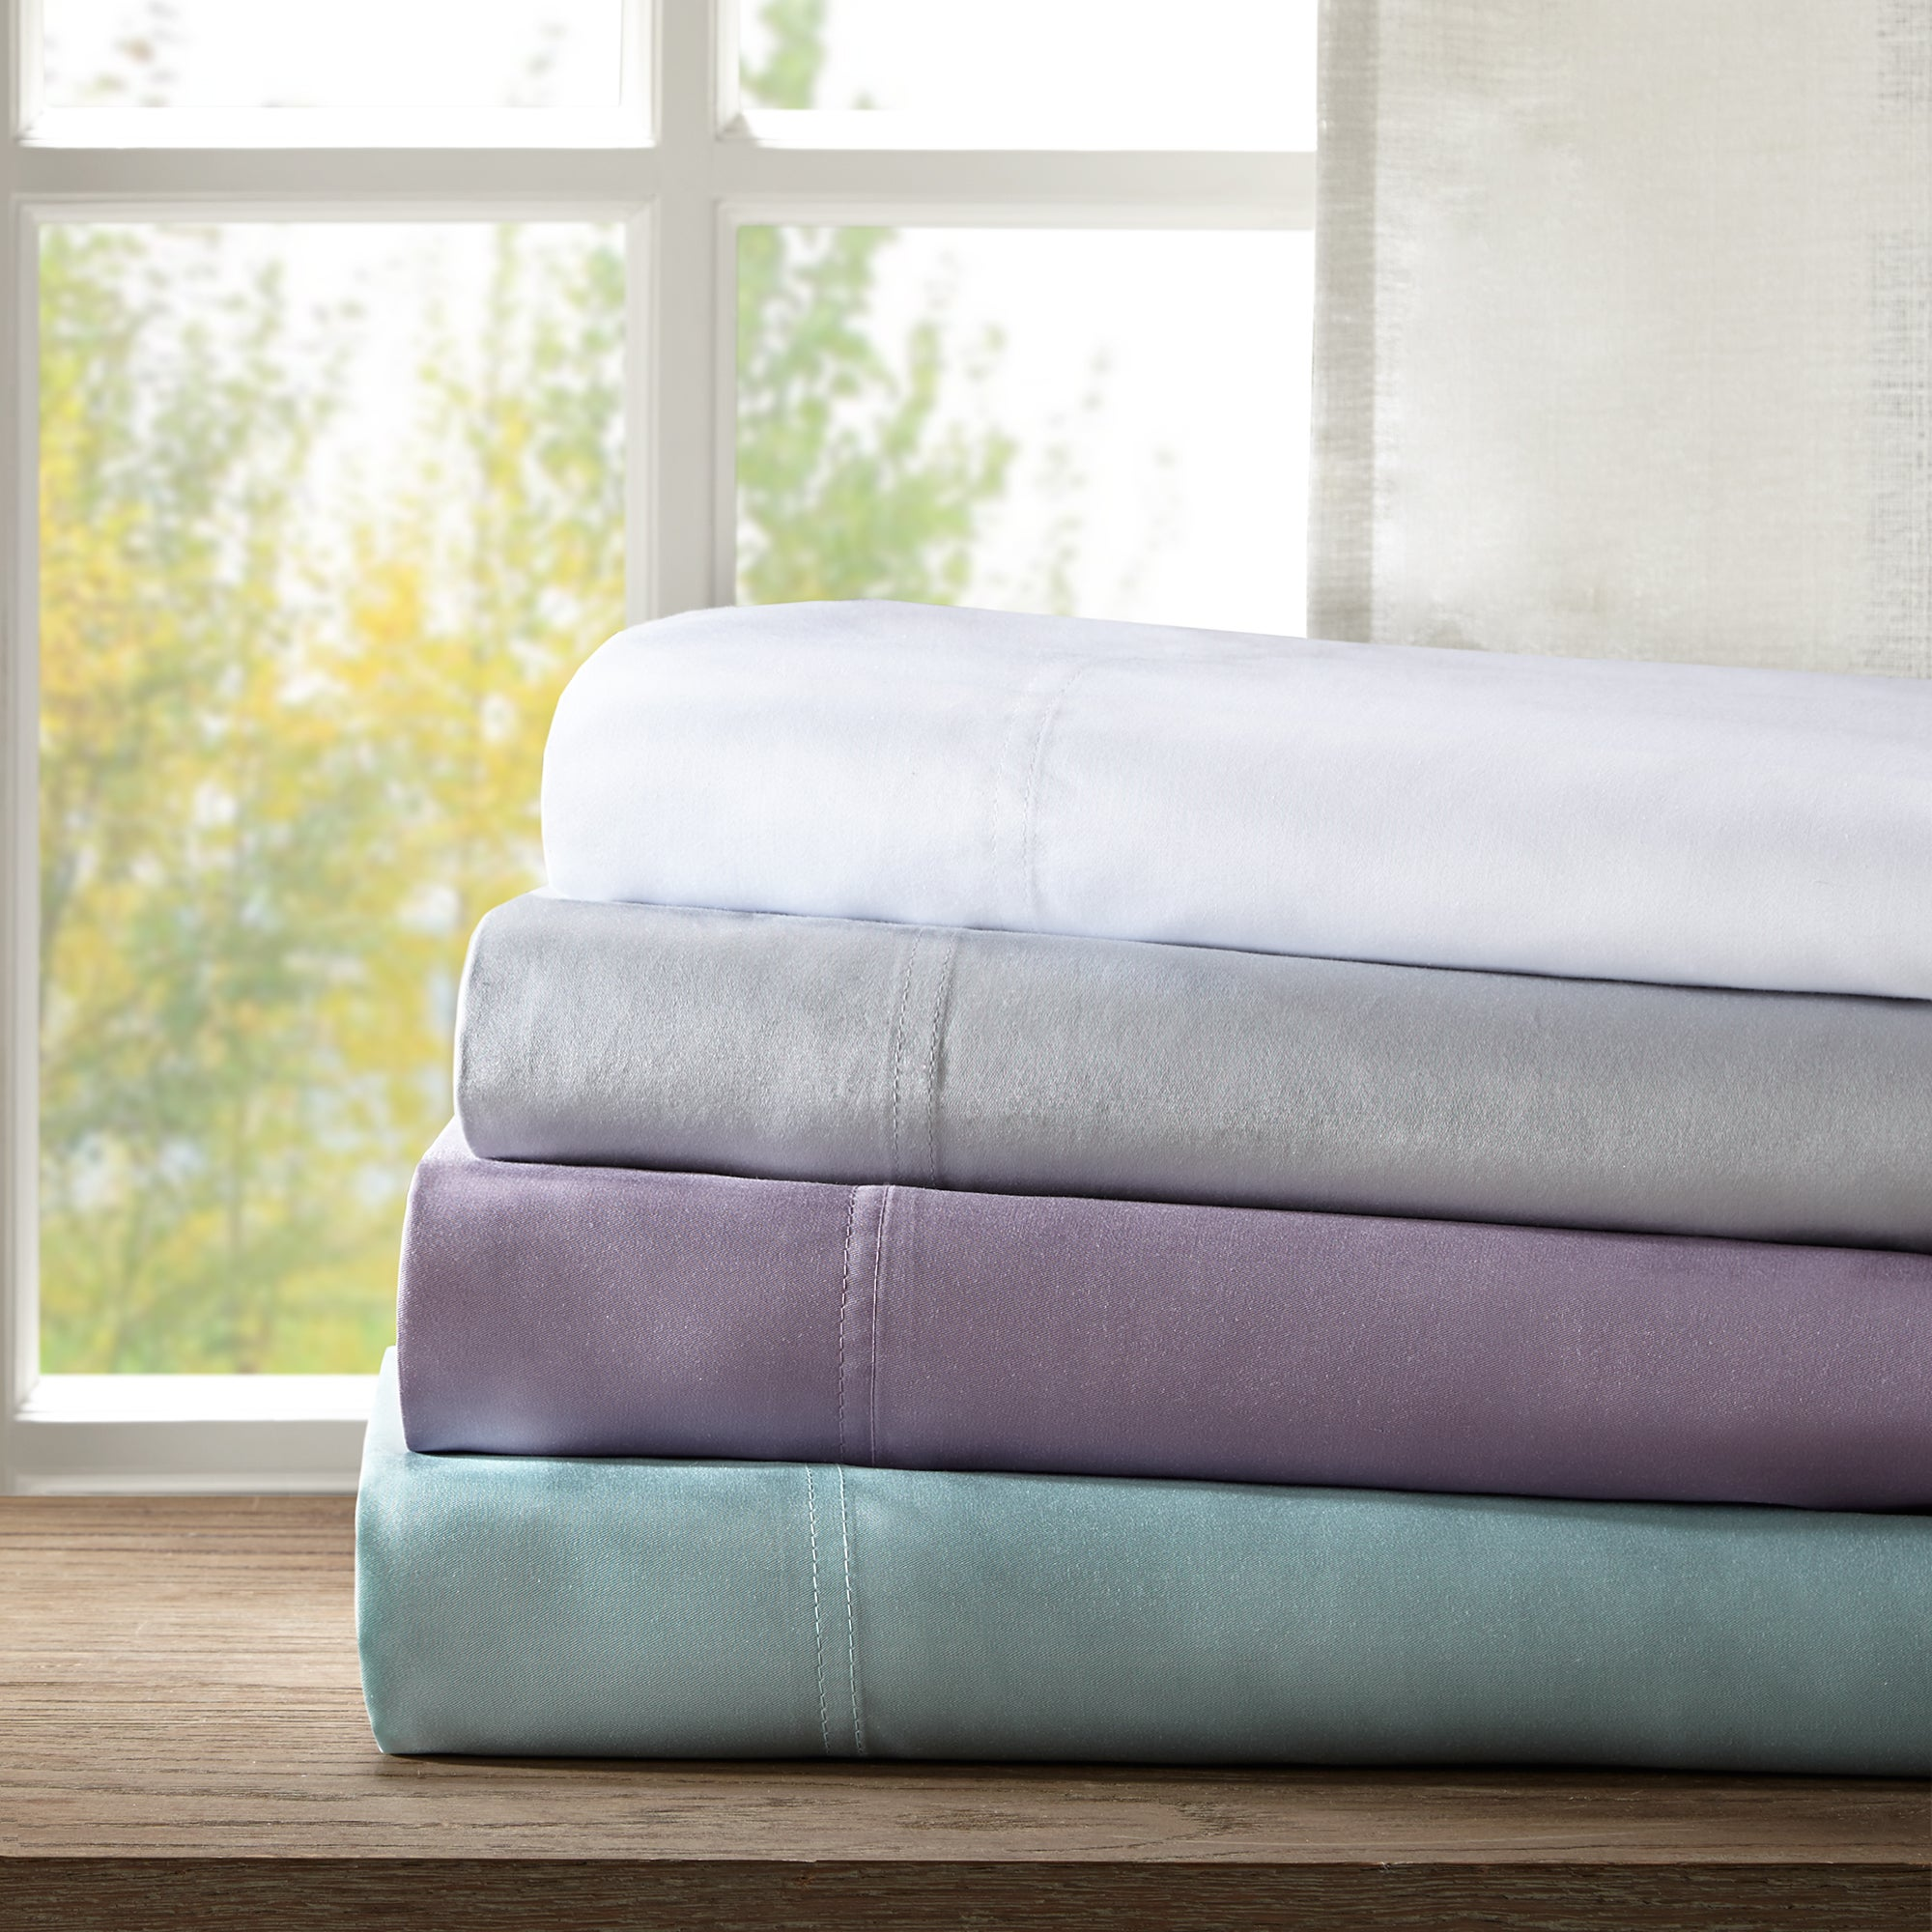 Sleep Philosophy Rayon From Bamboo Sheet Set 4 Color Option - Free Shipping  Today - Overstock.com - 21779743